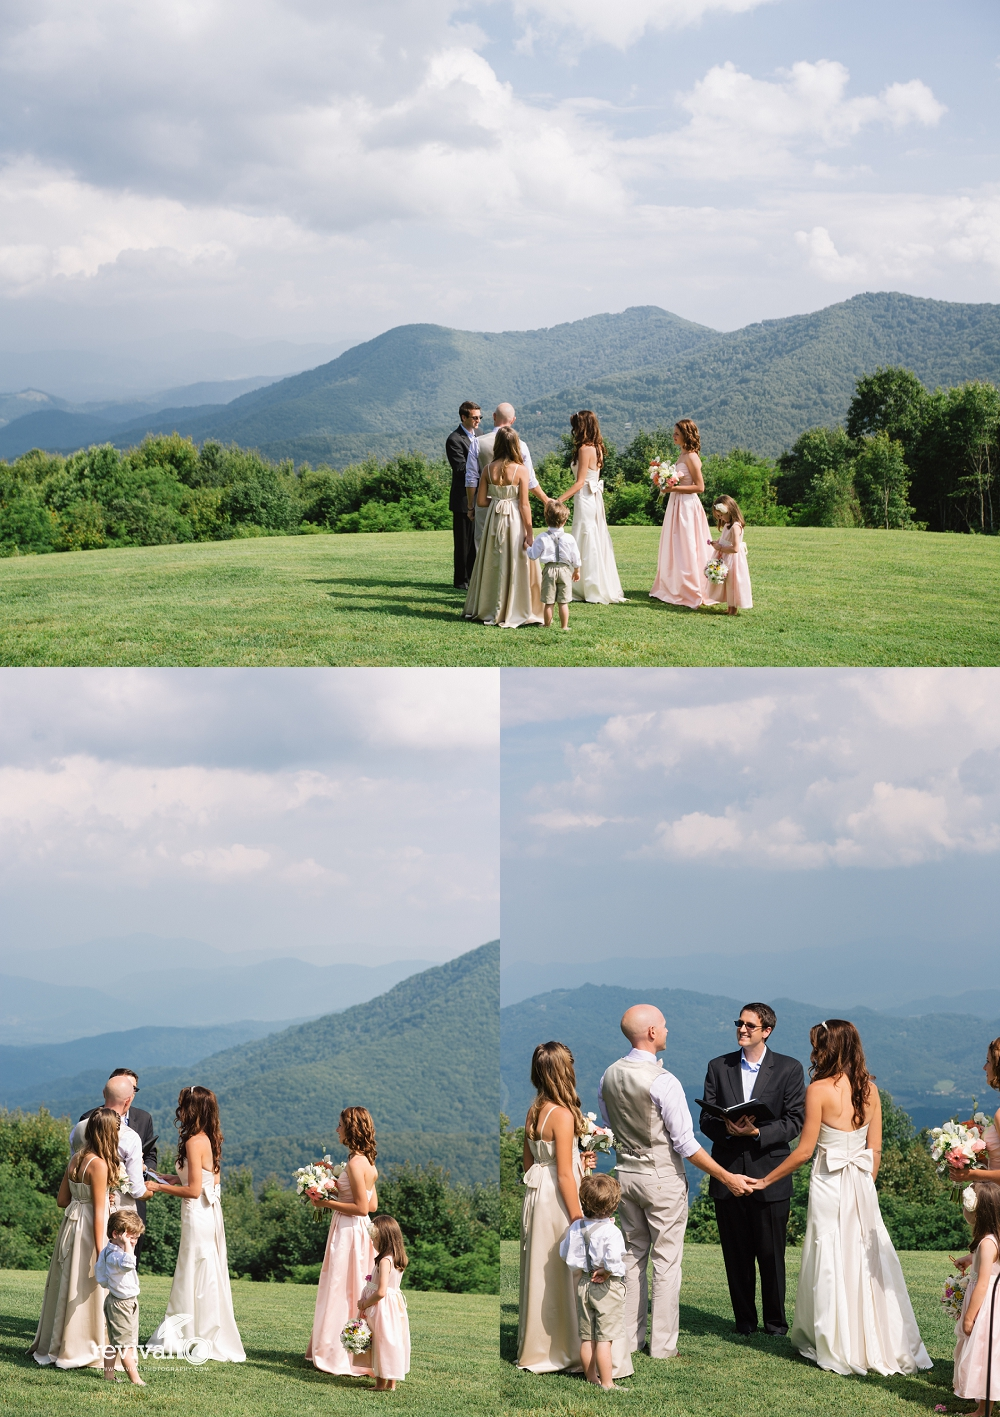 Photos by Revival Photography Weddings at The Swag Mountaintop Inn Waynesville NC Weddings NC Wedding Photographers www.revivalphotography.com